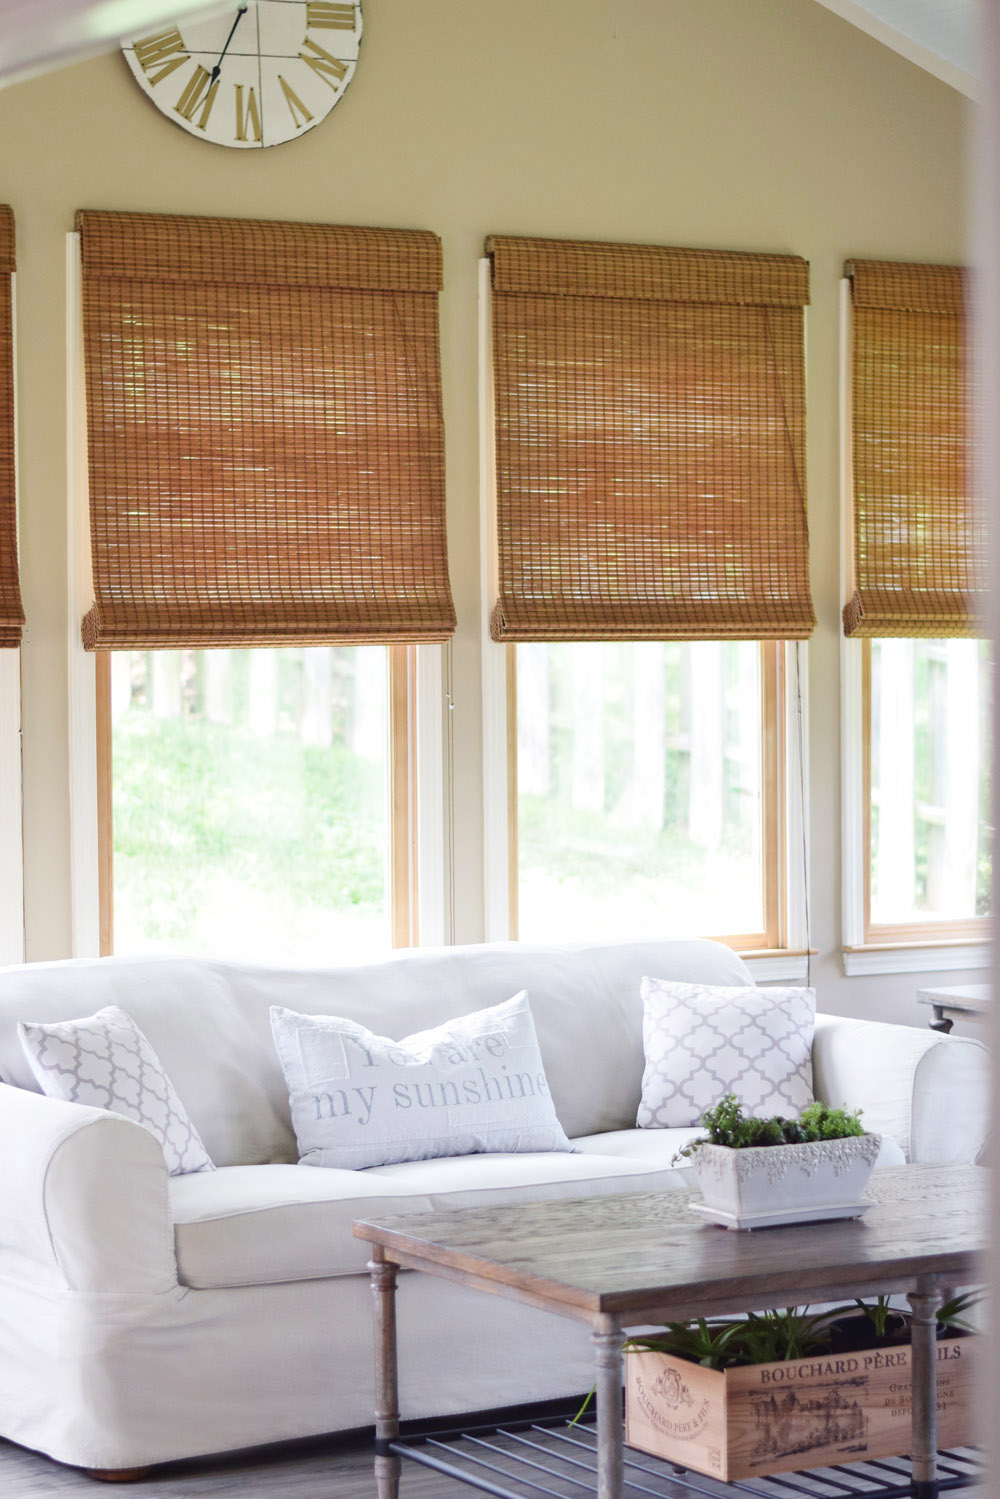 house peeks: our bright and happy sunroom!